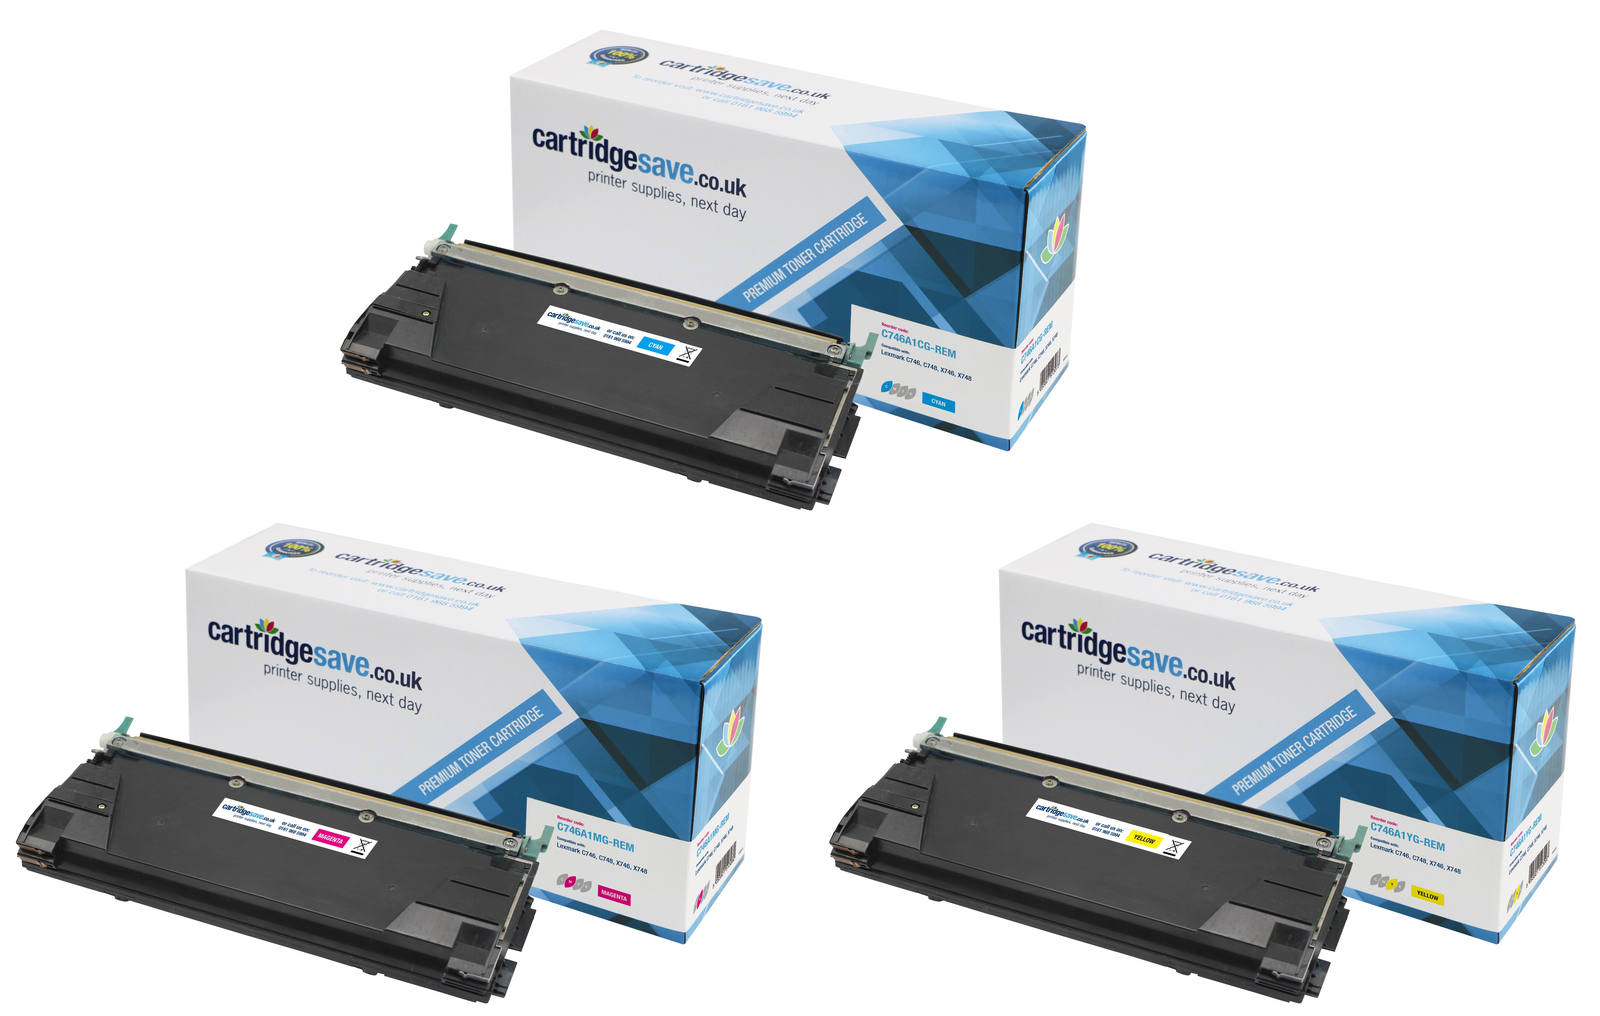 Compatible 3 Colour Lexmark C746 Toner Cartridge Multipack - (C746A1CG/ C746A1MG/ C746A1YG)